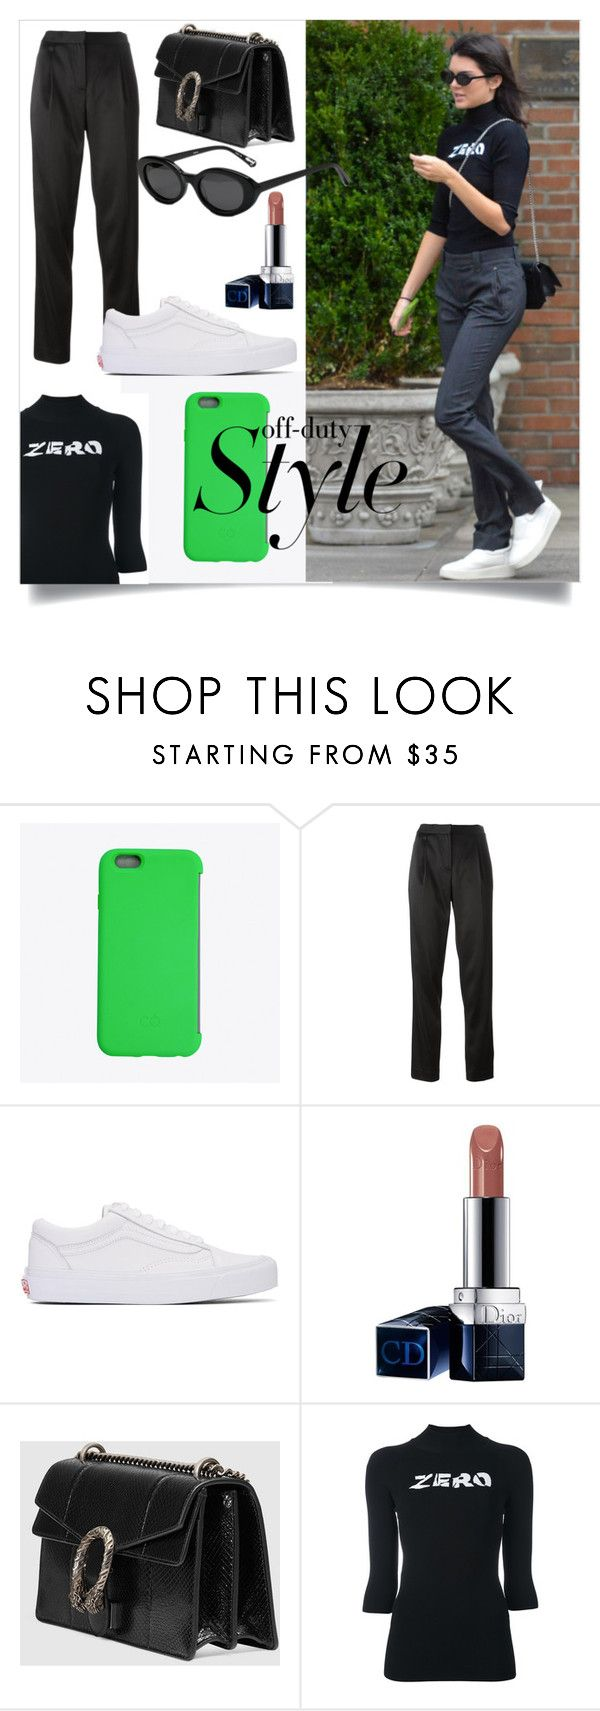 """off-duty Style"" by slavulienka on Polyvore featuring C6, T By Alexander Wang, Vans, Christian Dior, Gucci and Alyx"